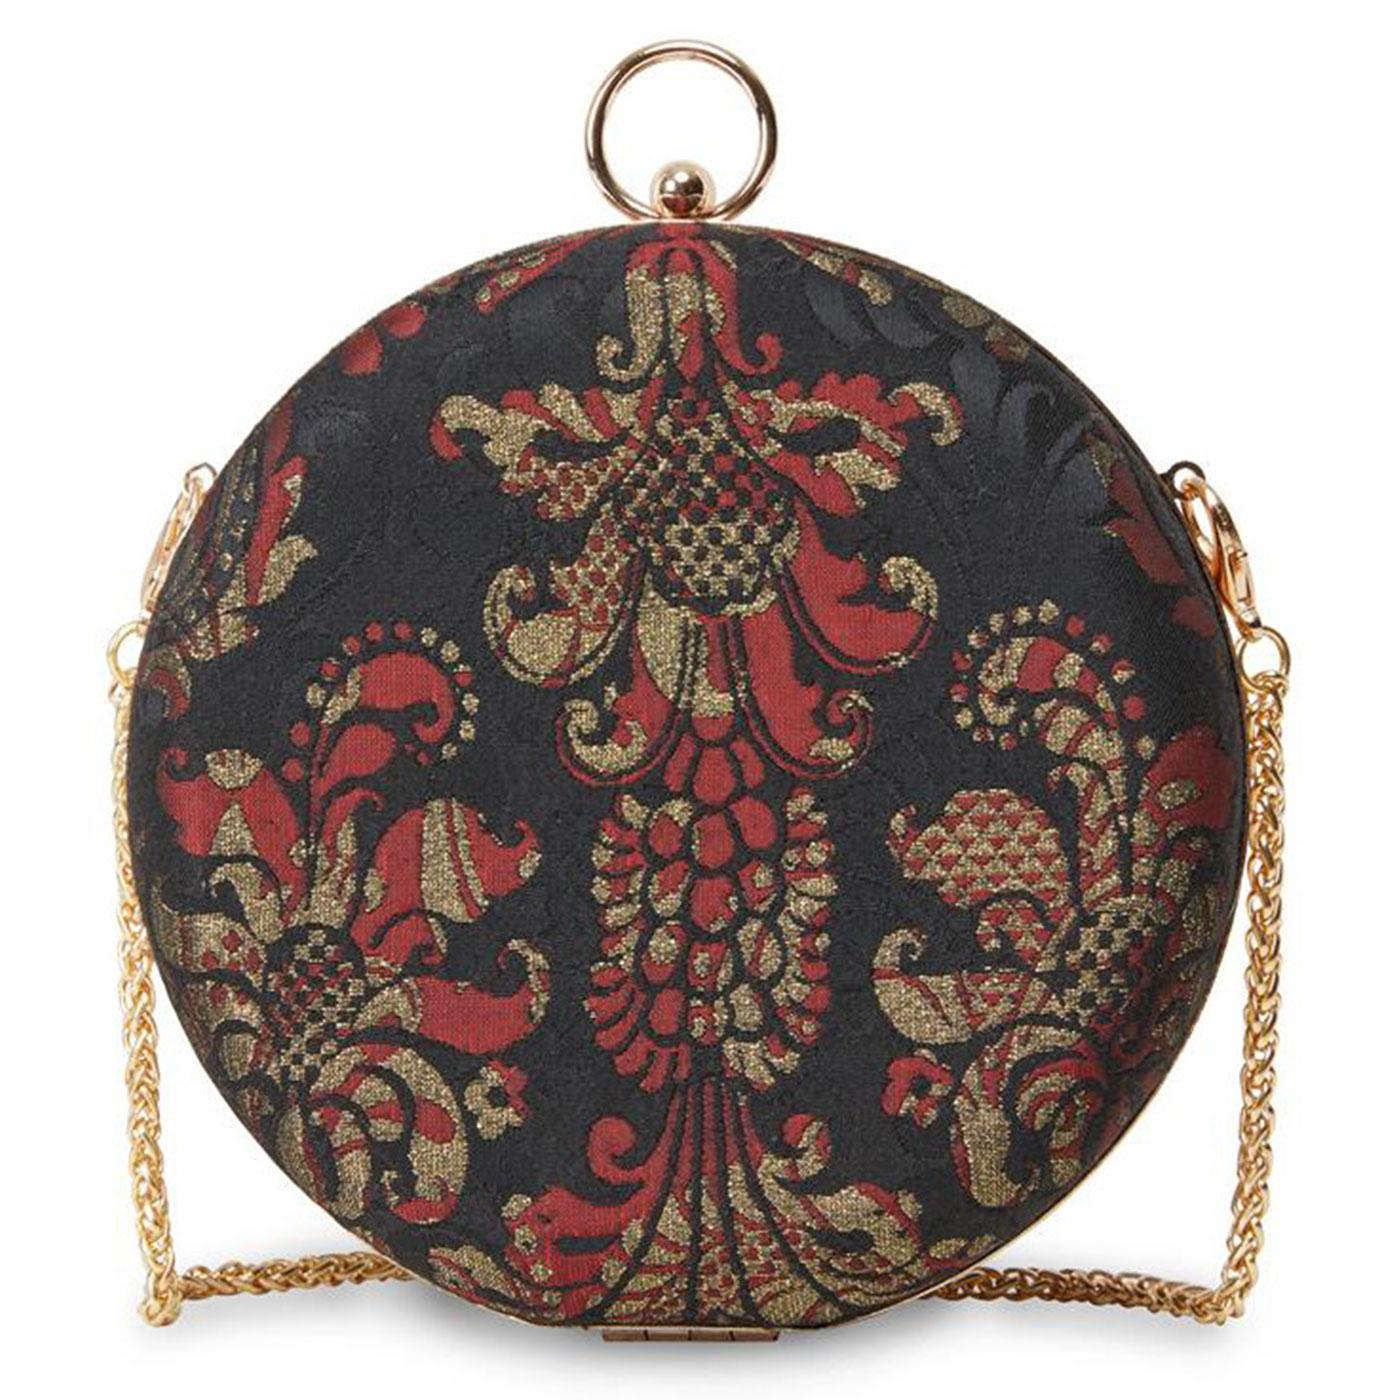 Victoria JOE BROWNS Vintage Brocade Round Box Bag